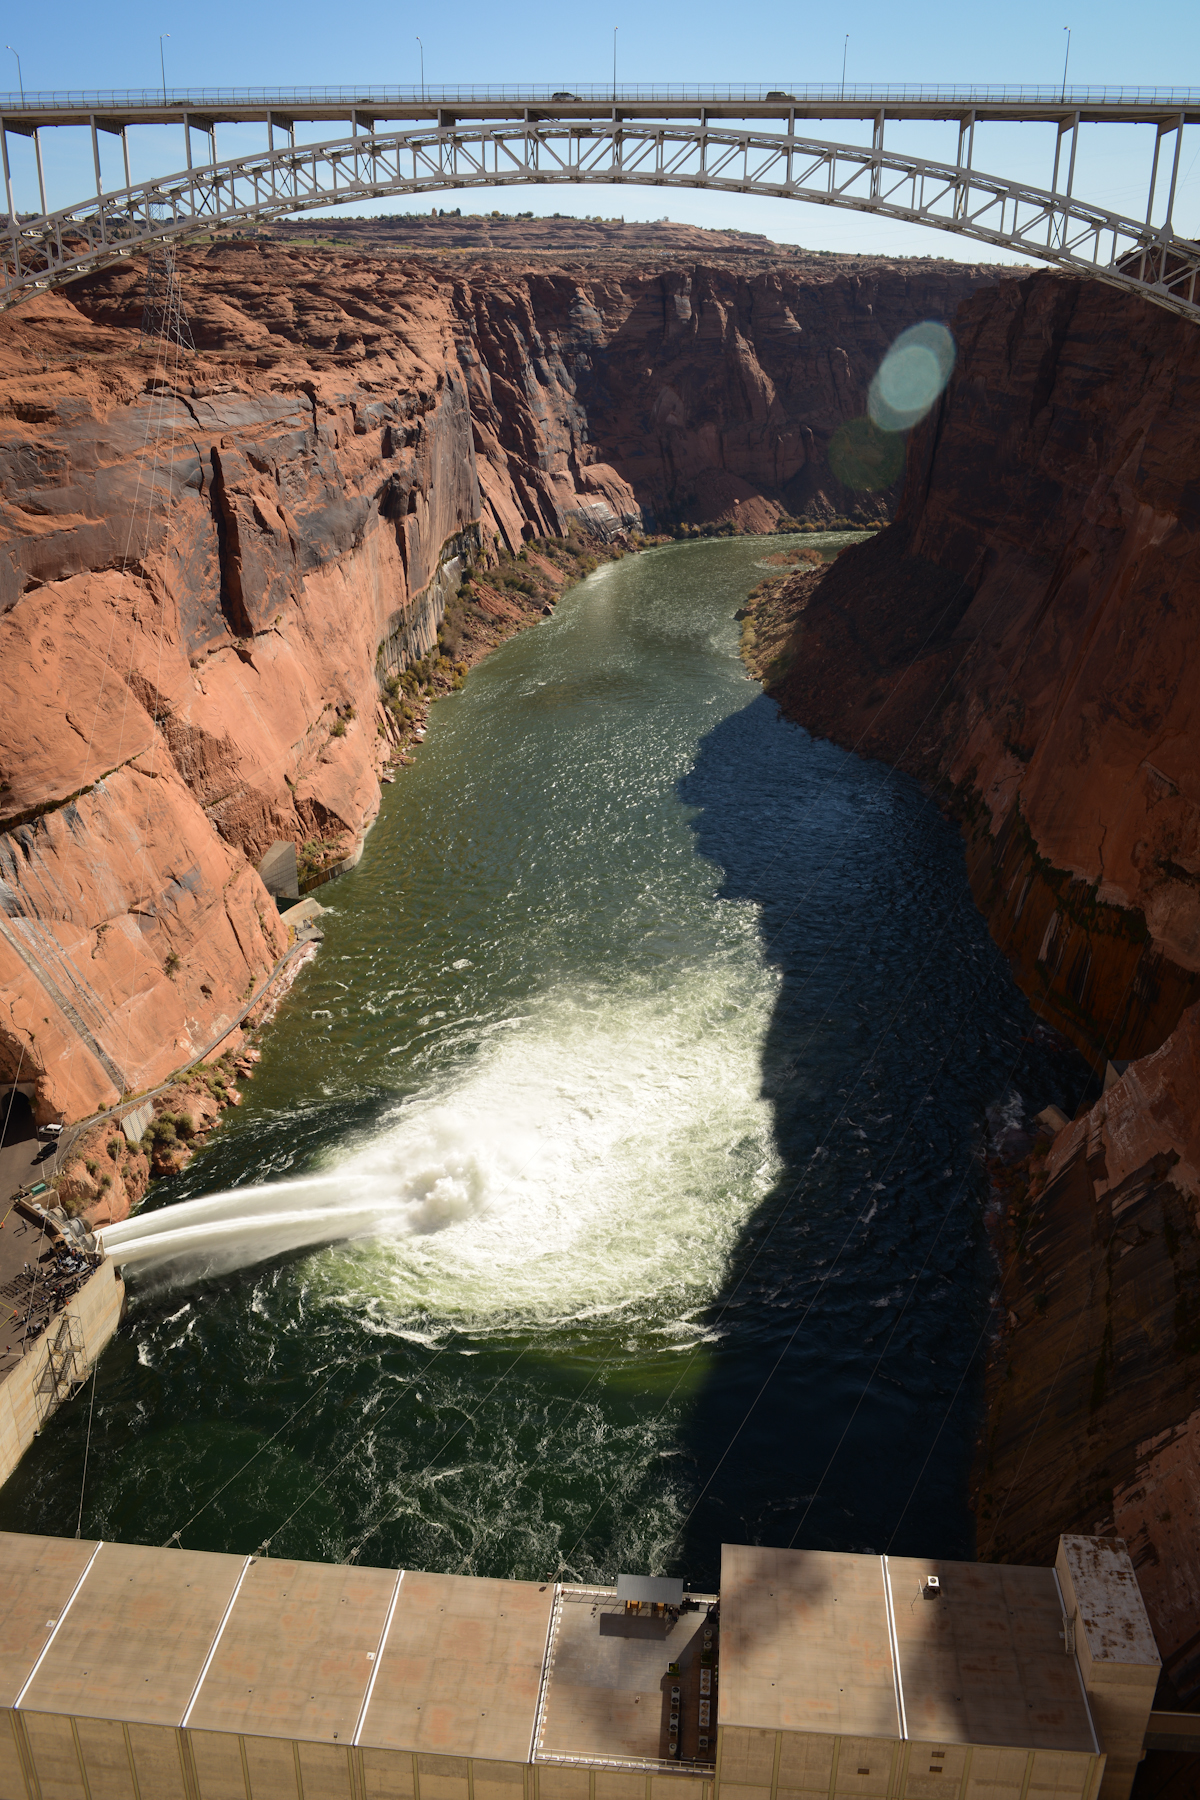 Water shoots from jet tubes during a high-flow experimental release, Glen Canyon Dam, Page, Ariz., photo undated | Image courtesy U.S. Bureau of Reclamation, St. George News